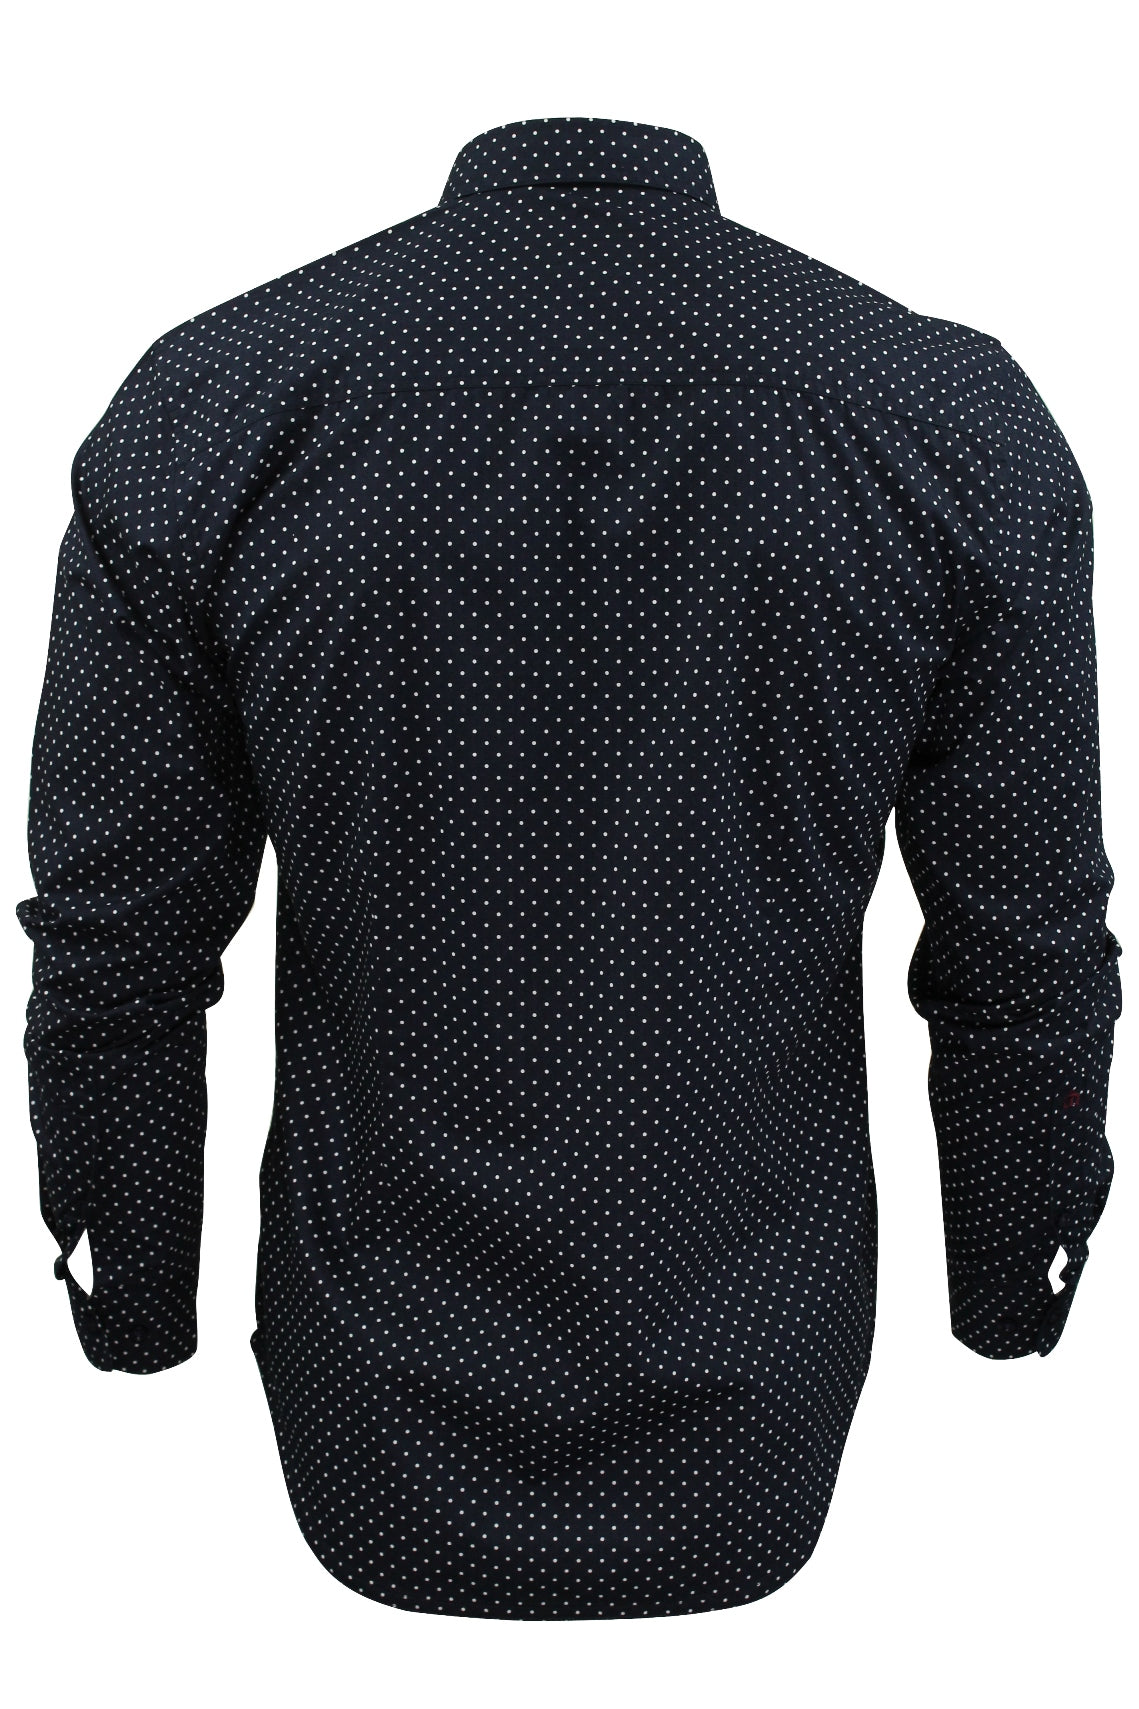 Mens Polka Dot Shirt by Merc London 'Siegel' Long Sleeved-3